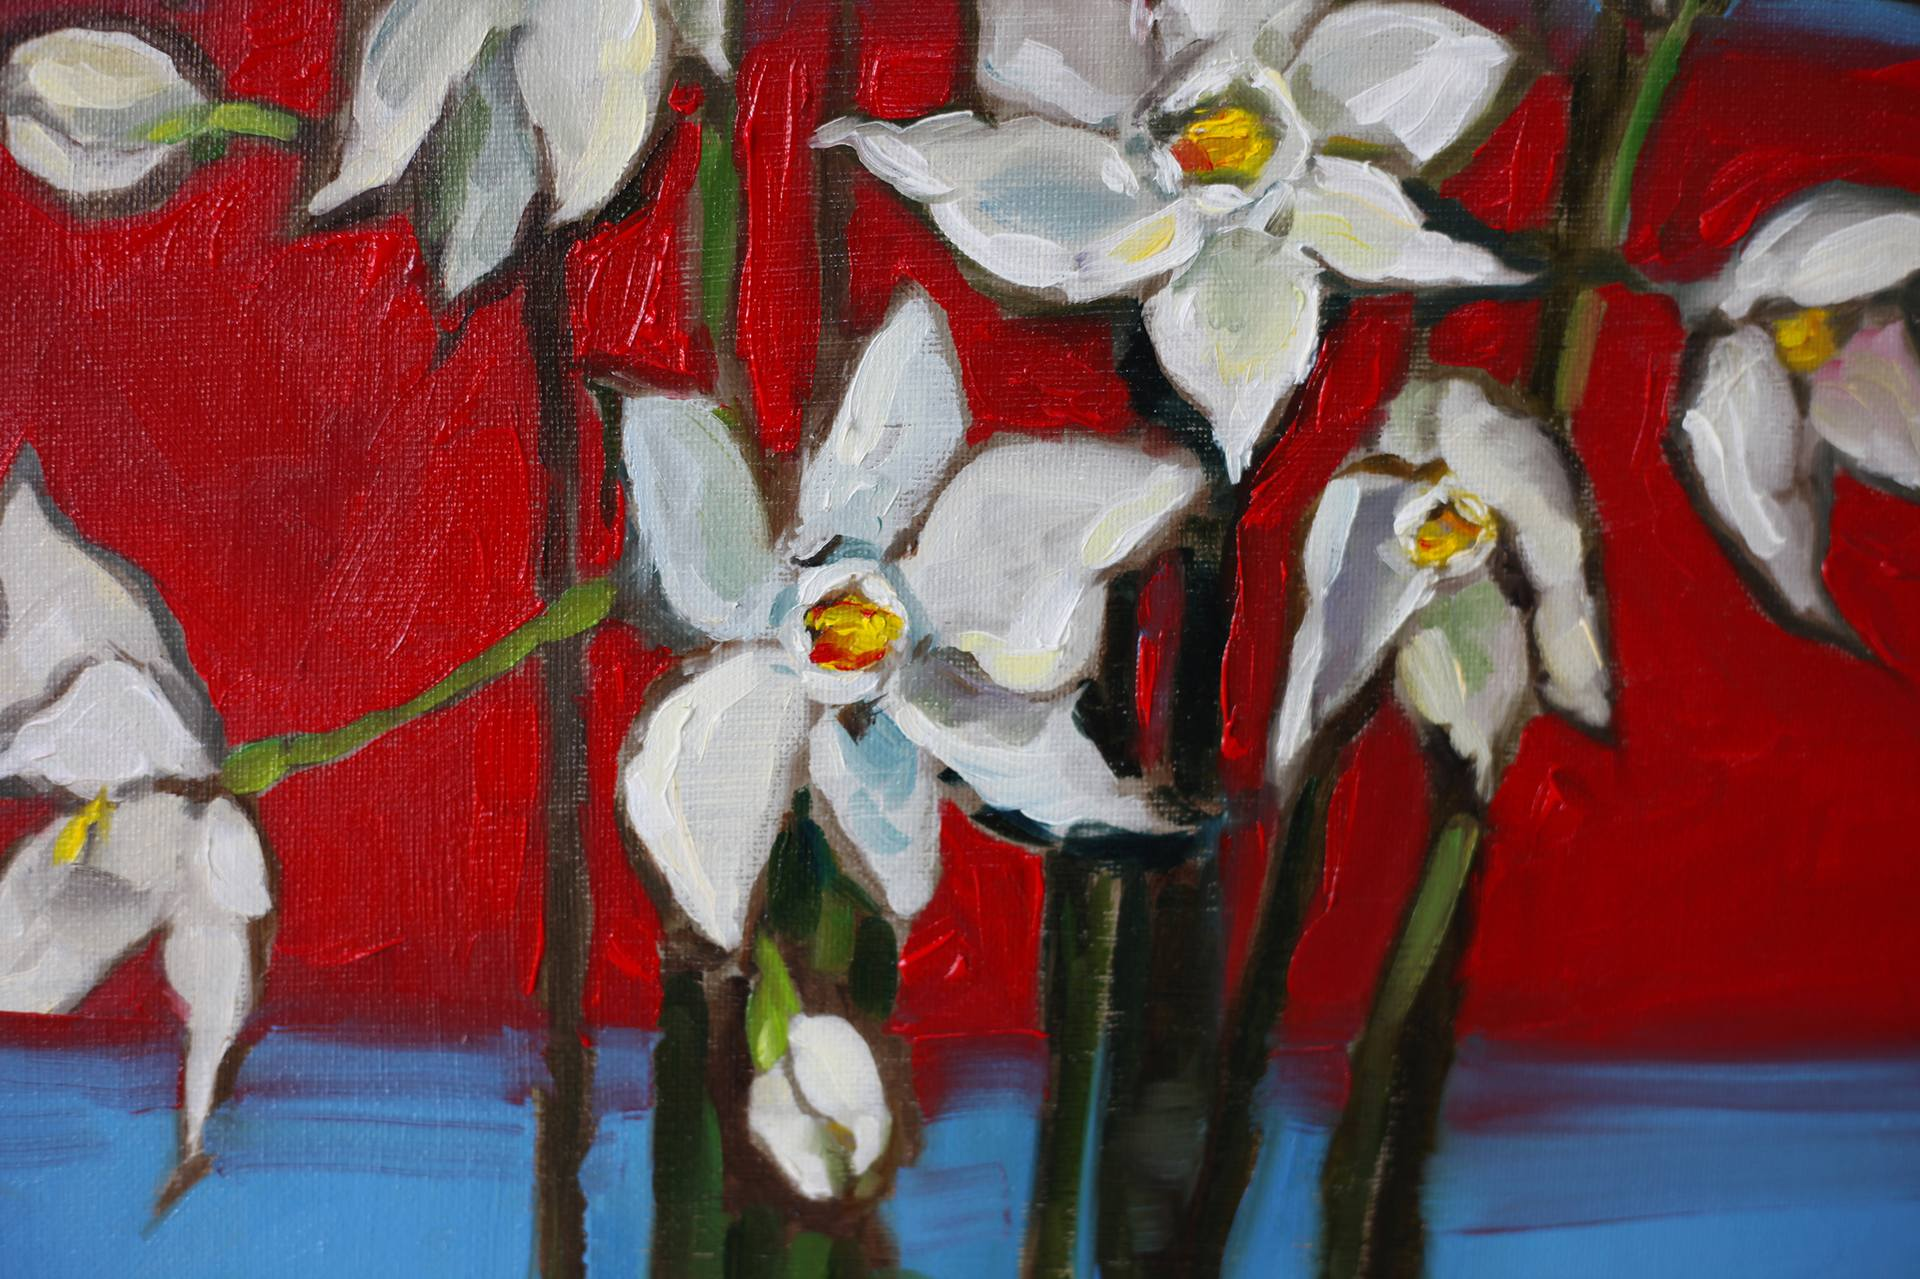 The Narcissuses